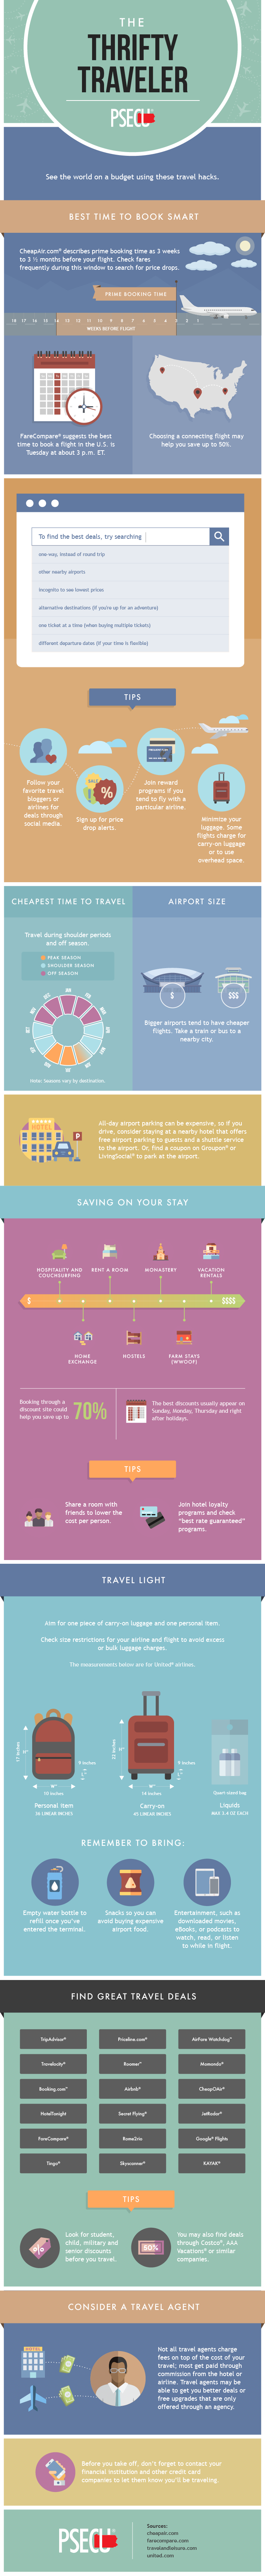 Tips for Summer Travel on a Budget